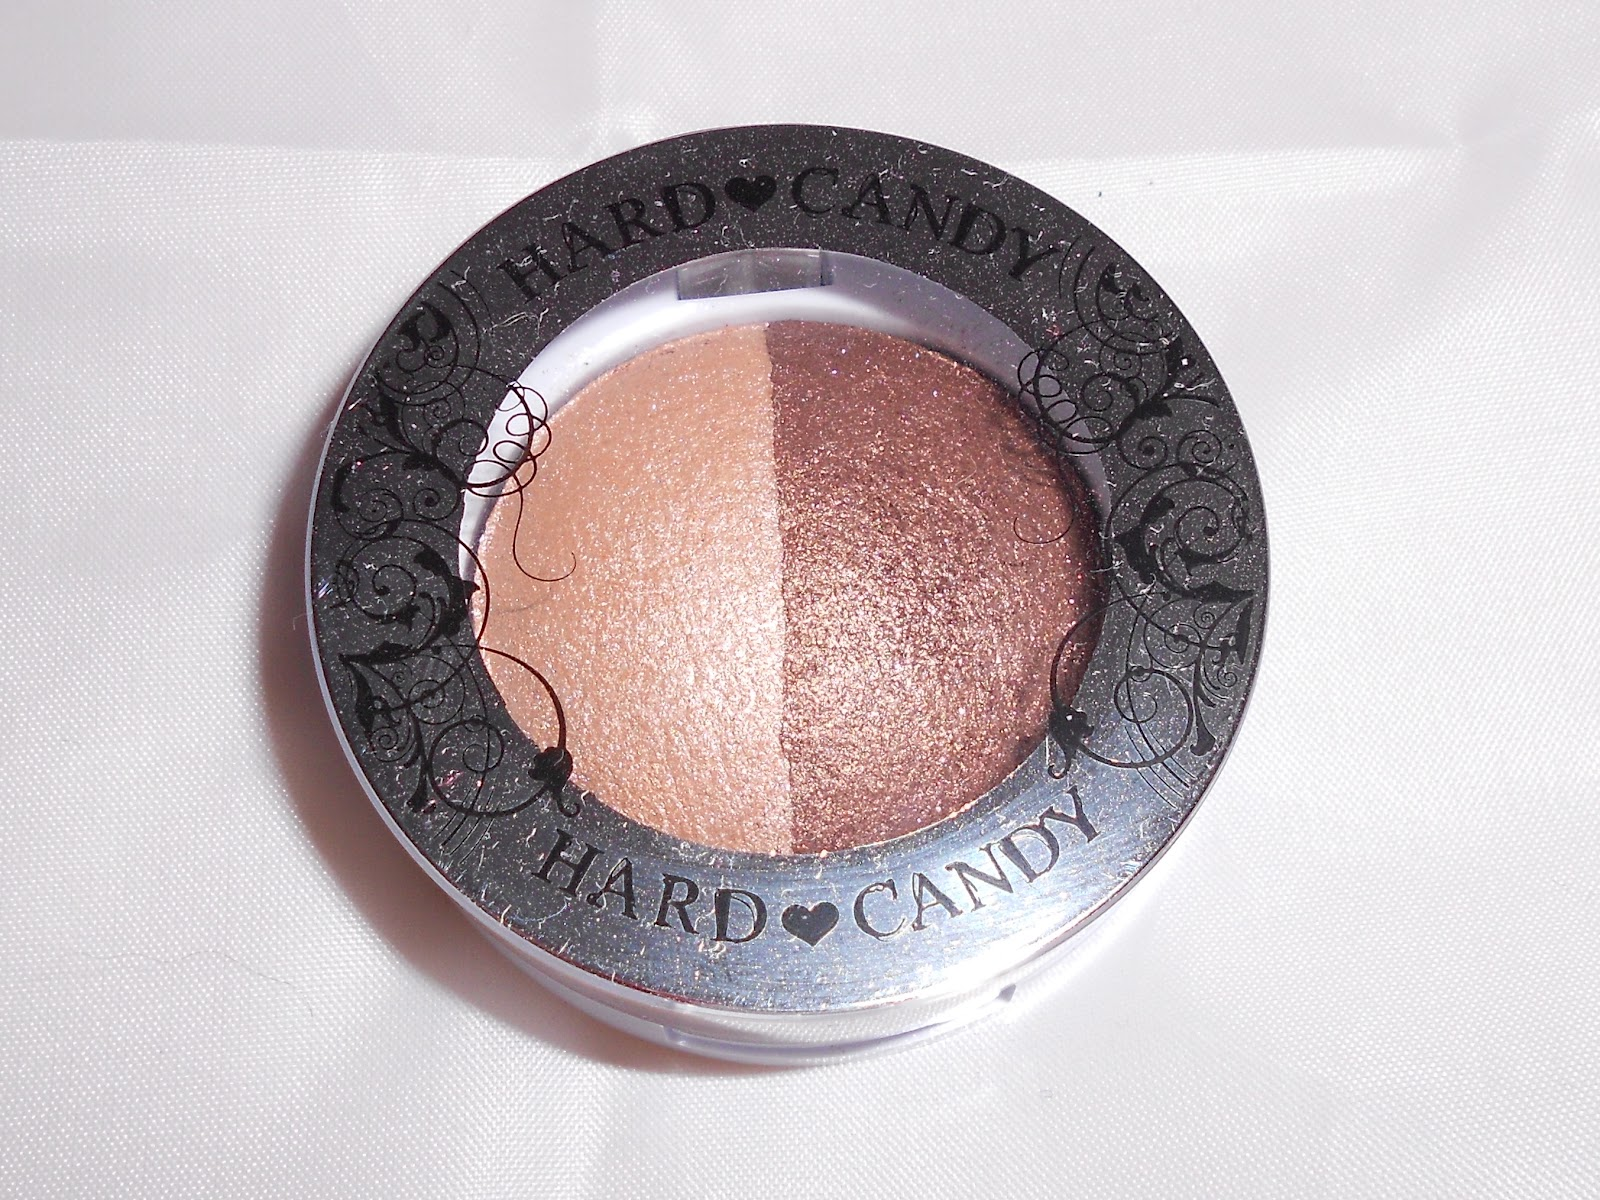 Hard Candy eyeshadow